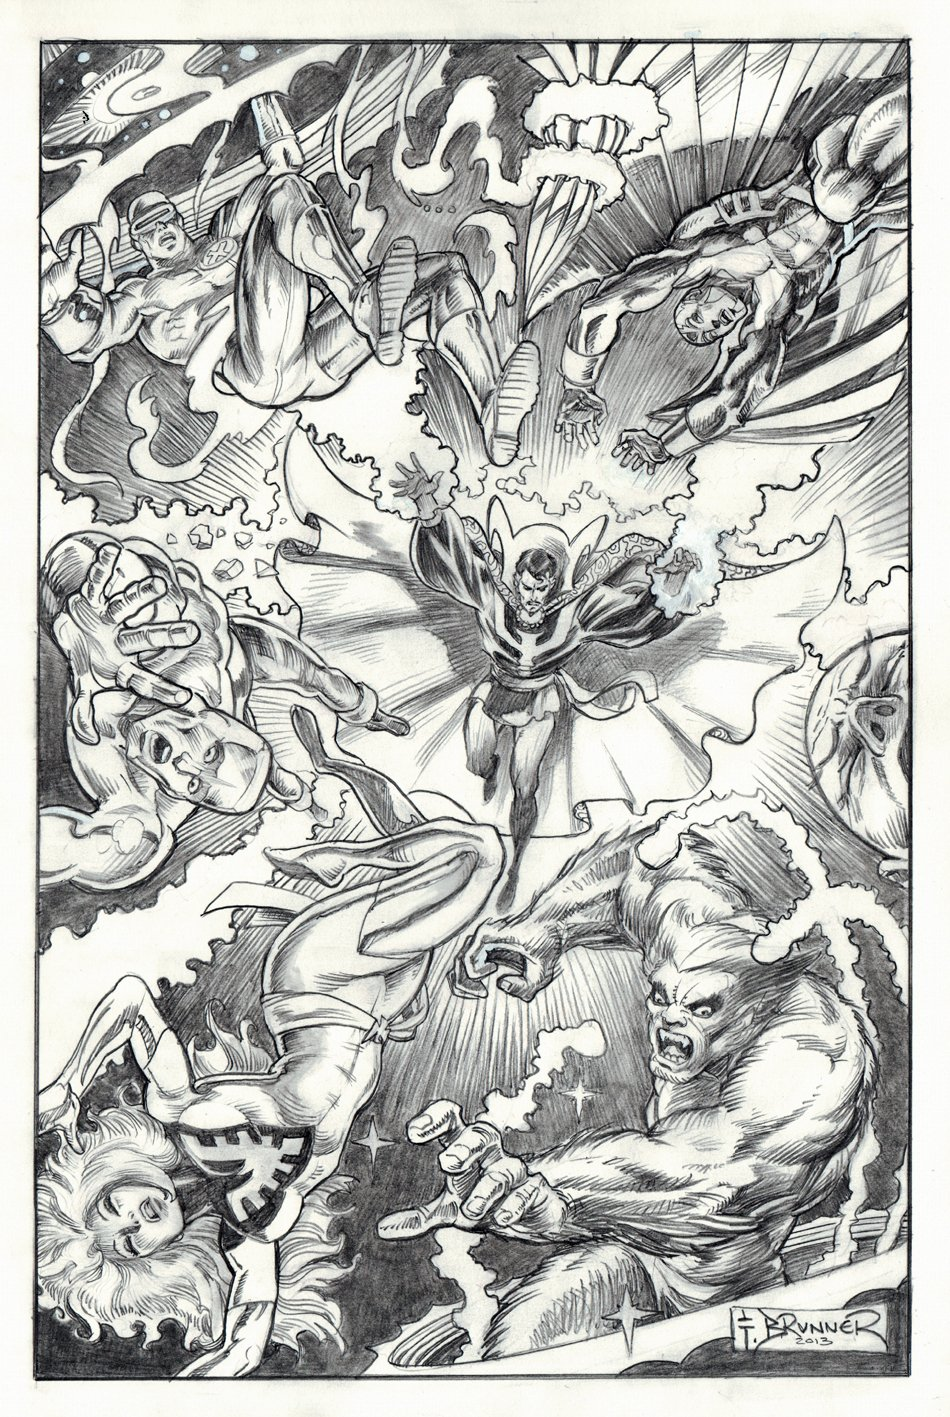 Dr. Strange Battles '6' X-Men Commission Pinup (Large Art) 2012